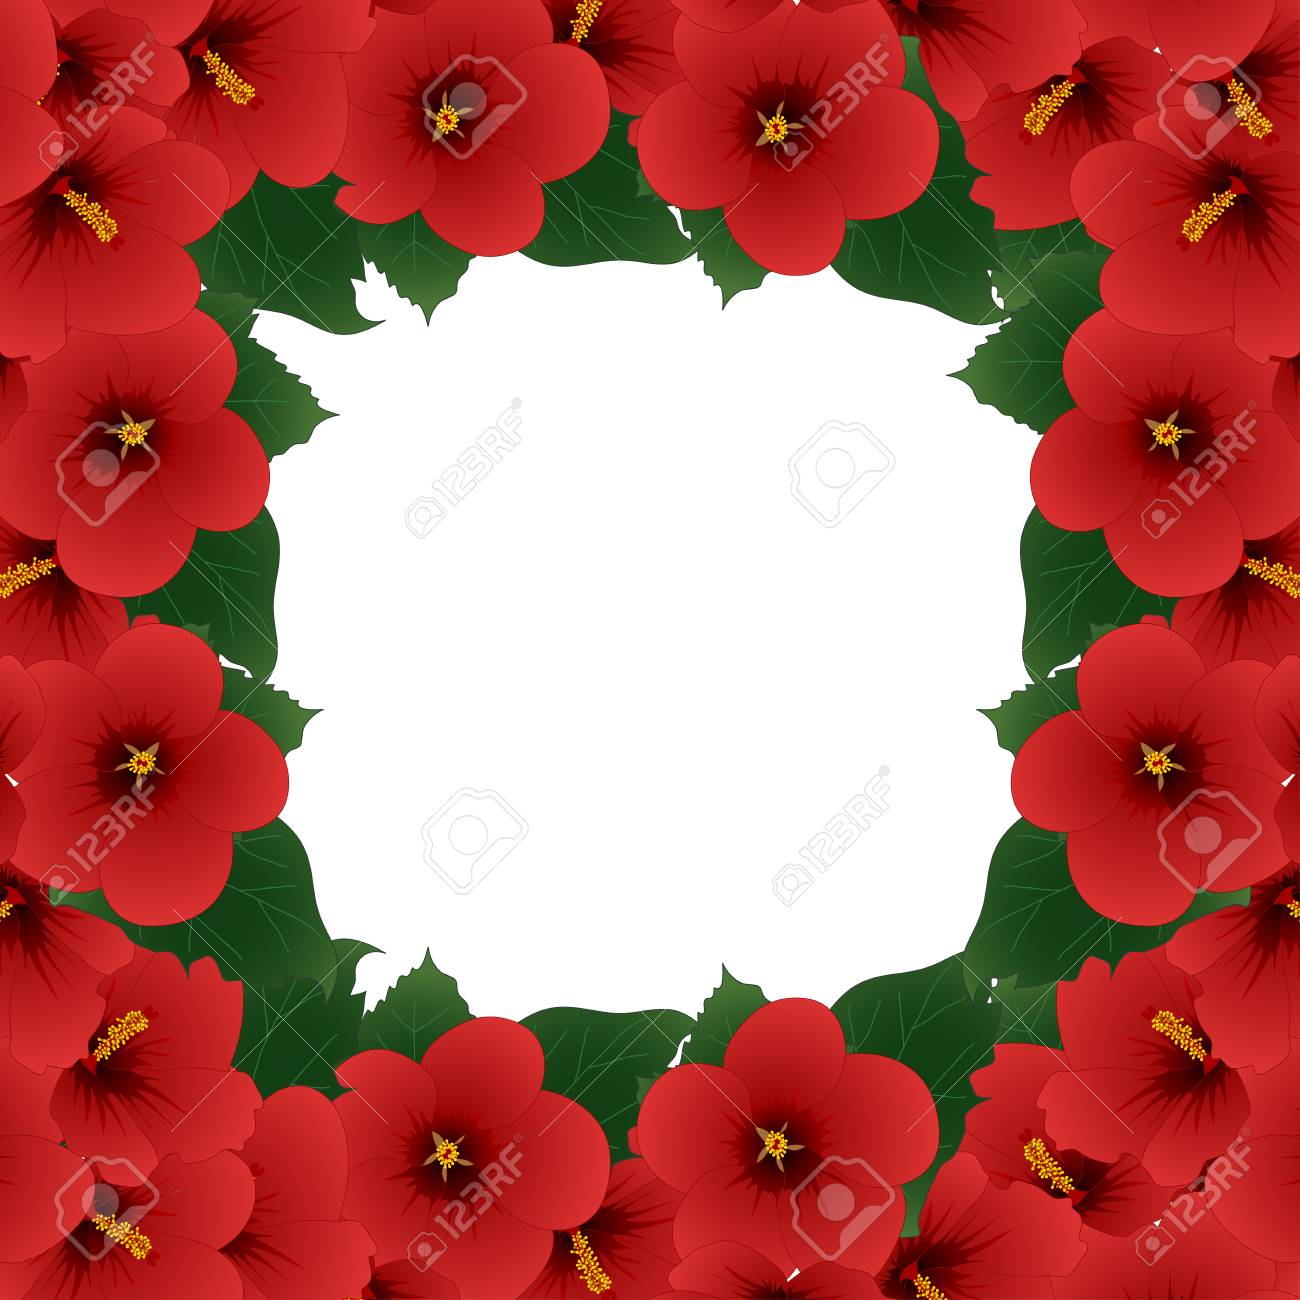 Red Hibiscus Flower Rose Of Sharon Border Vector Illustration